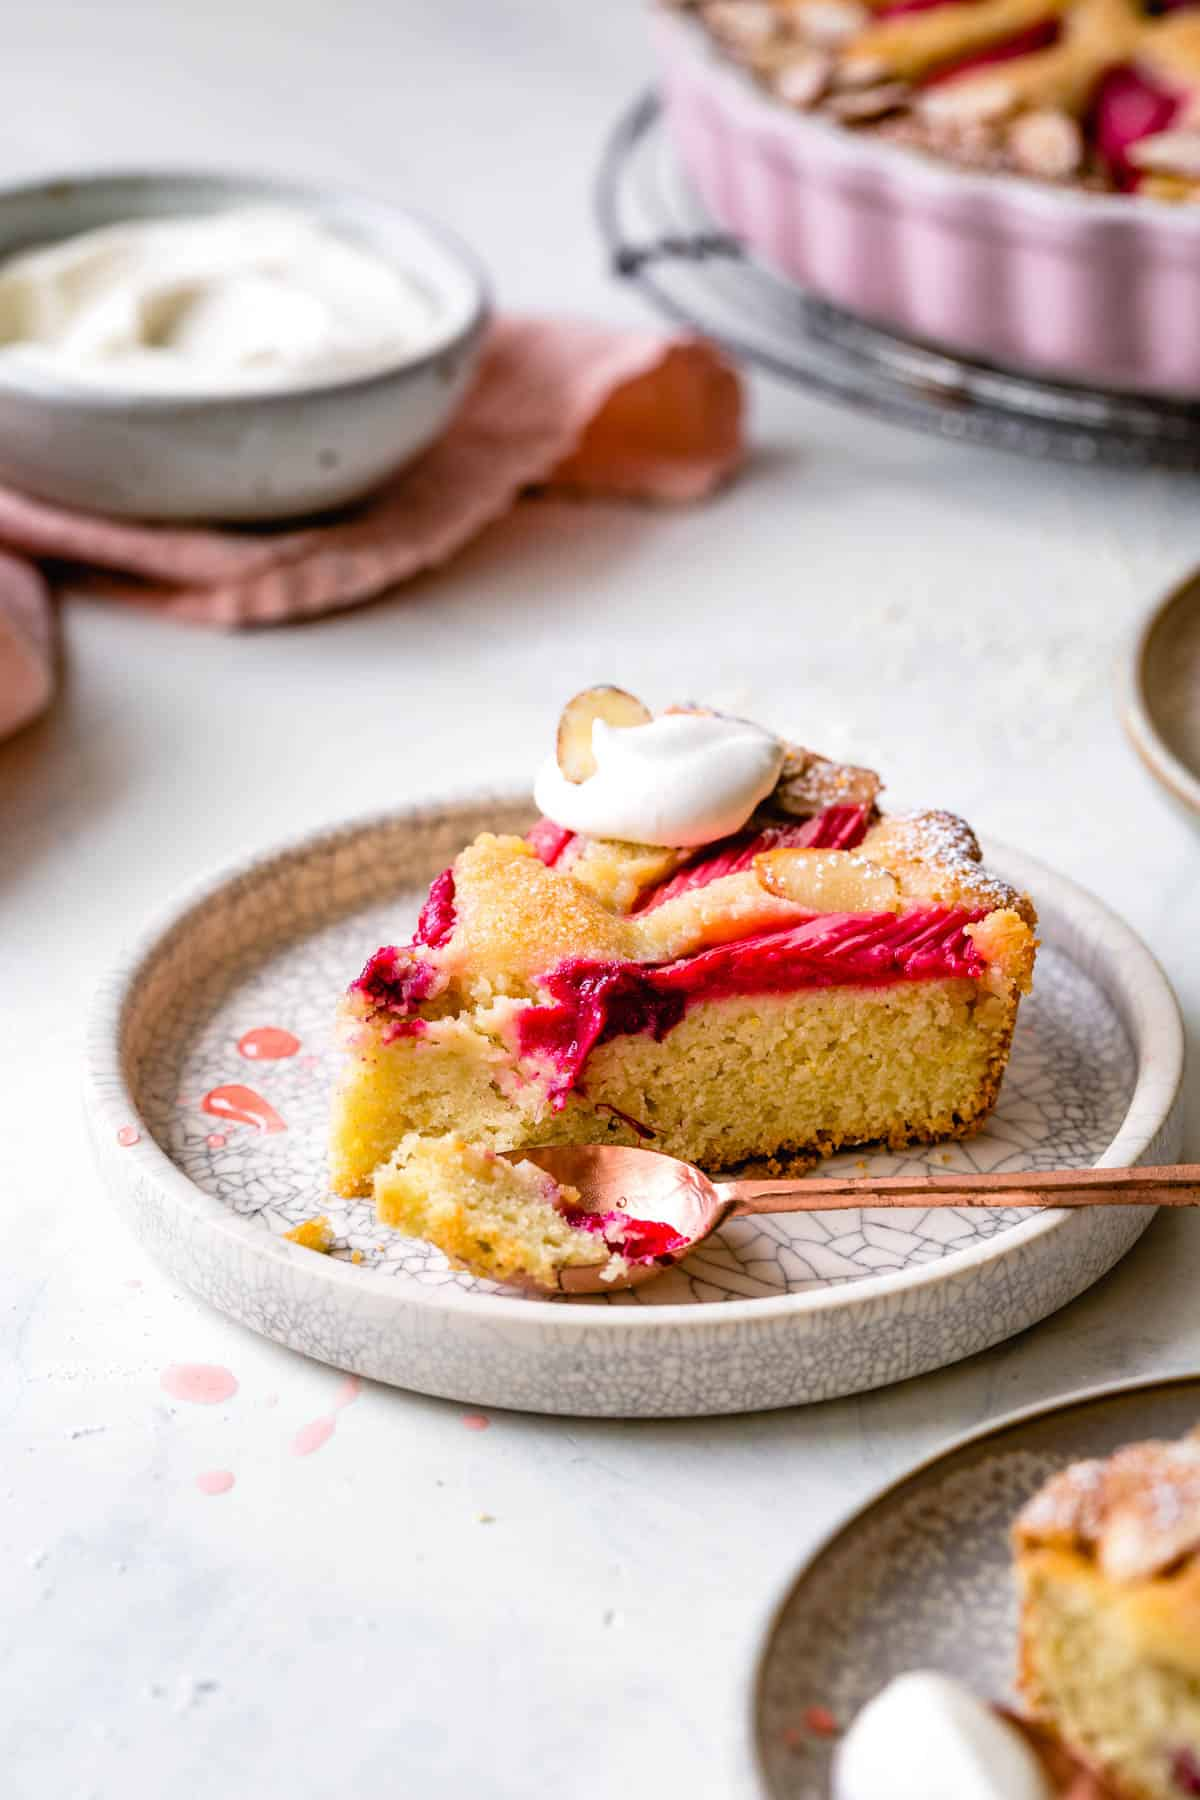 rhubarb cake on a crackled plate topped with whipped cream